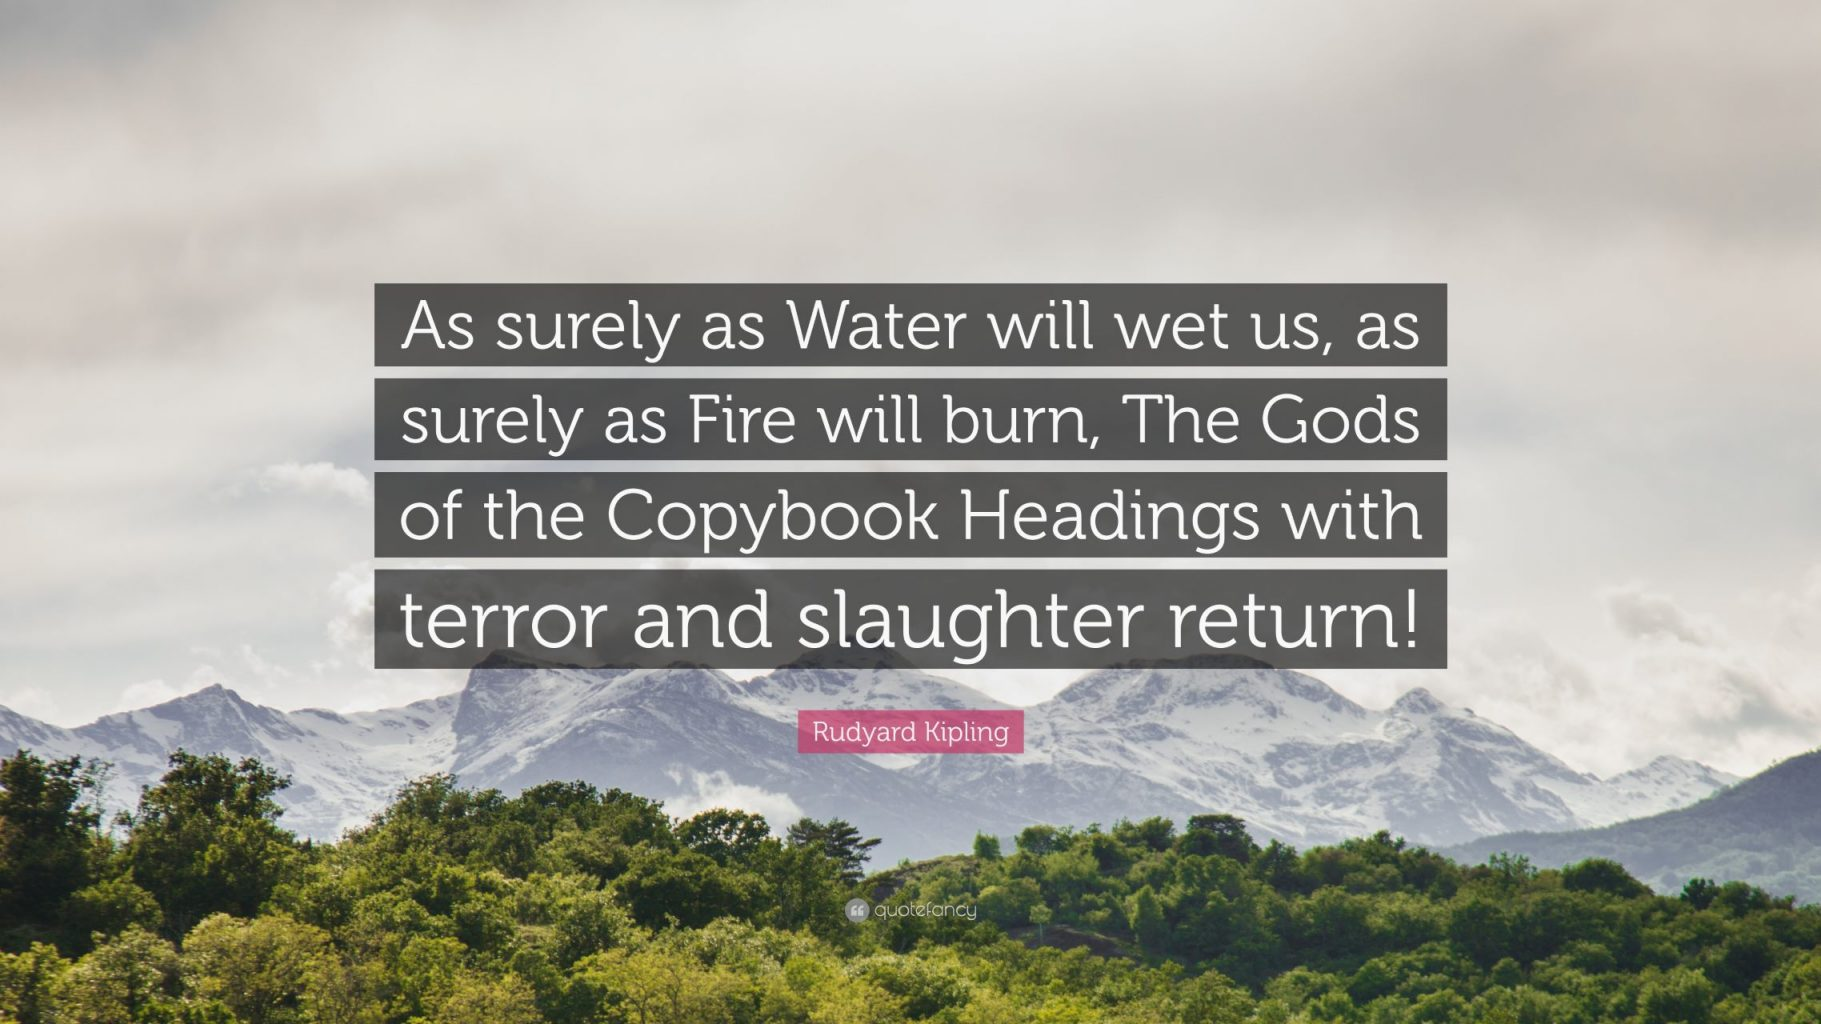 """As surely as Water will wet us, as surely as Fire will burn, The Gods of the Copybook Headings with terror and slaughter return!"" — Rudyard Kipling - The God of the Copybook Headings"